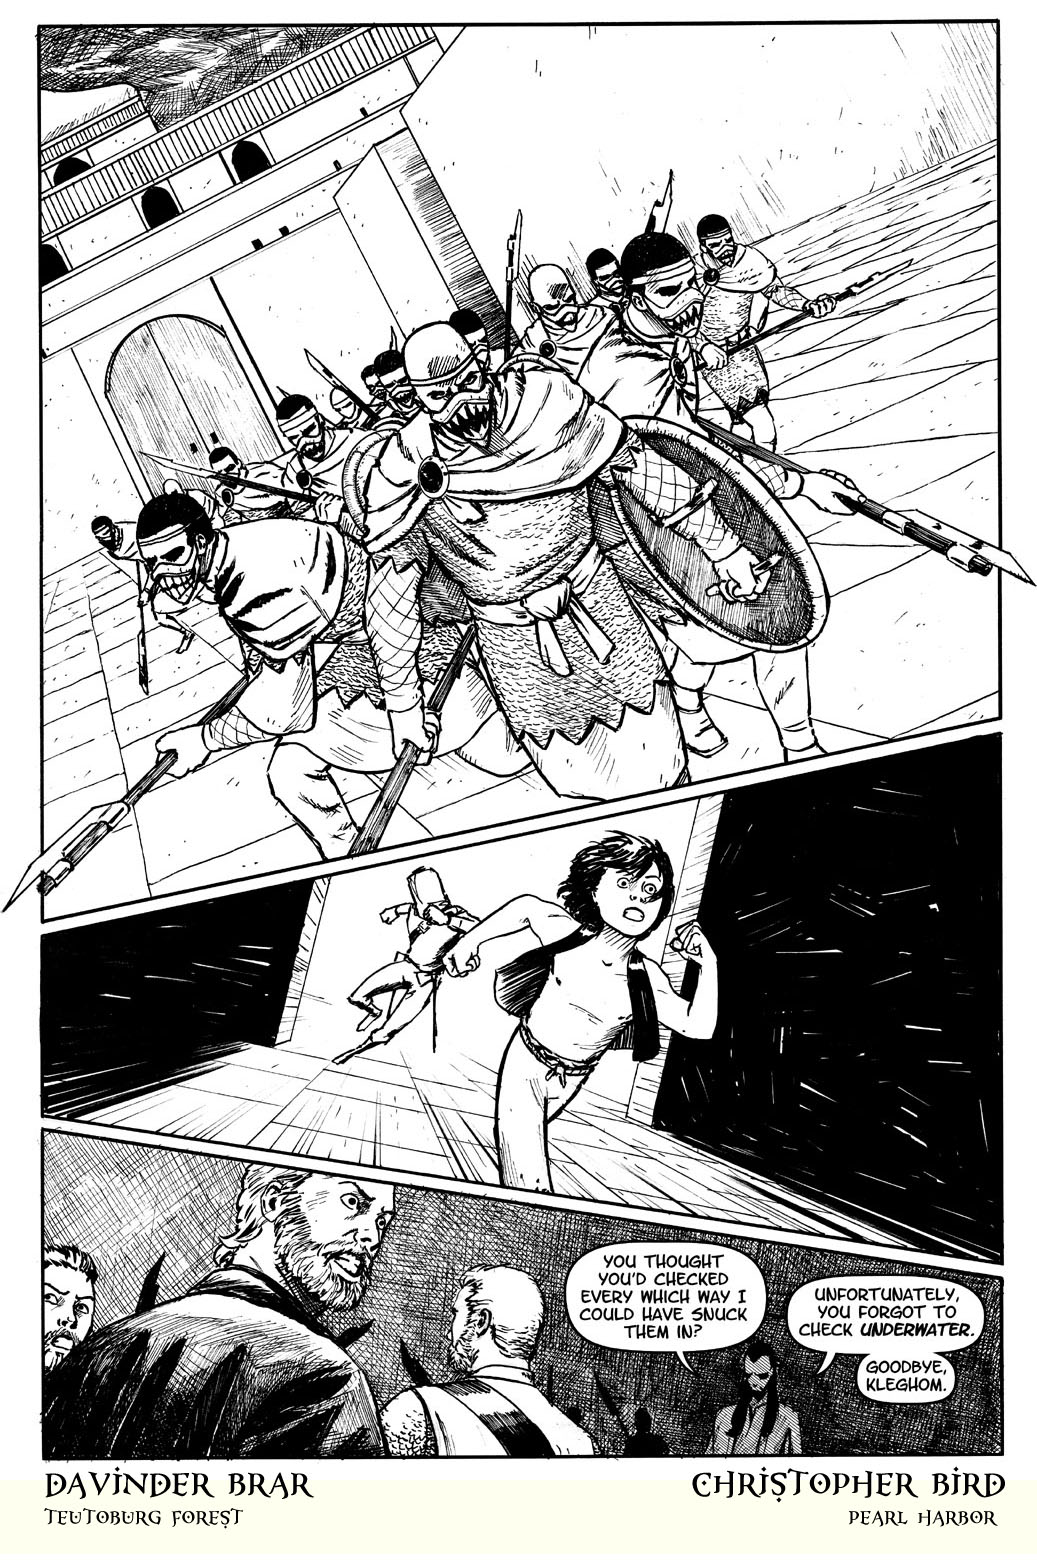 Book 3, page 23